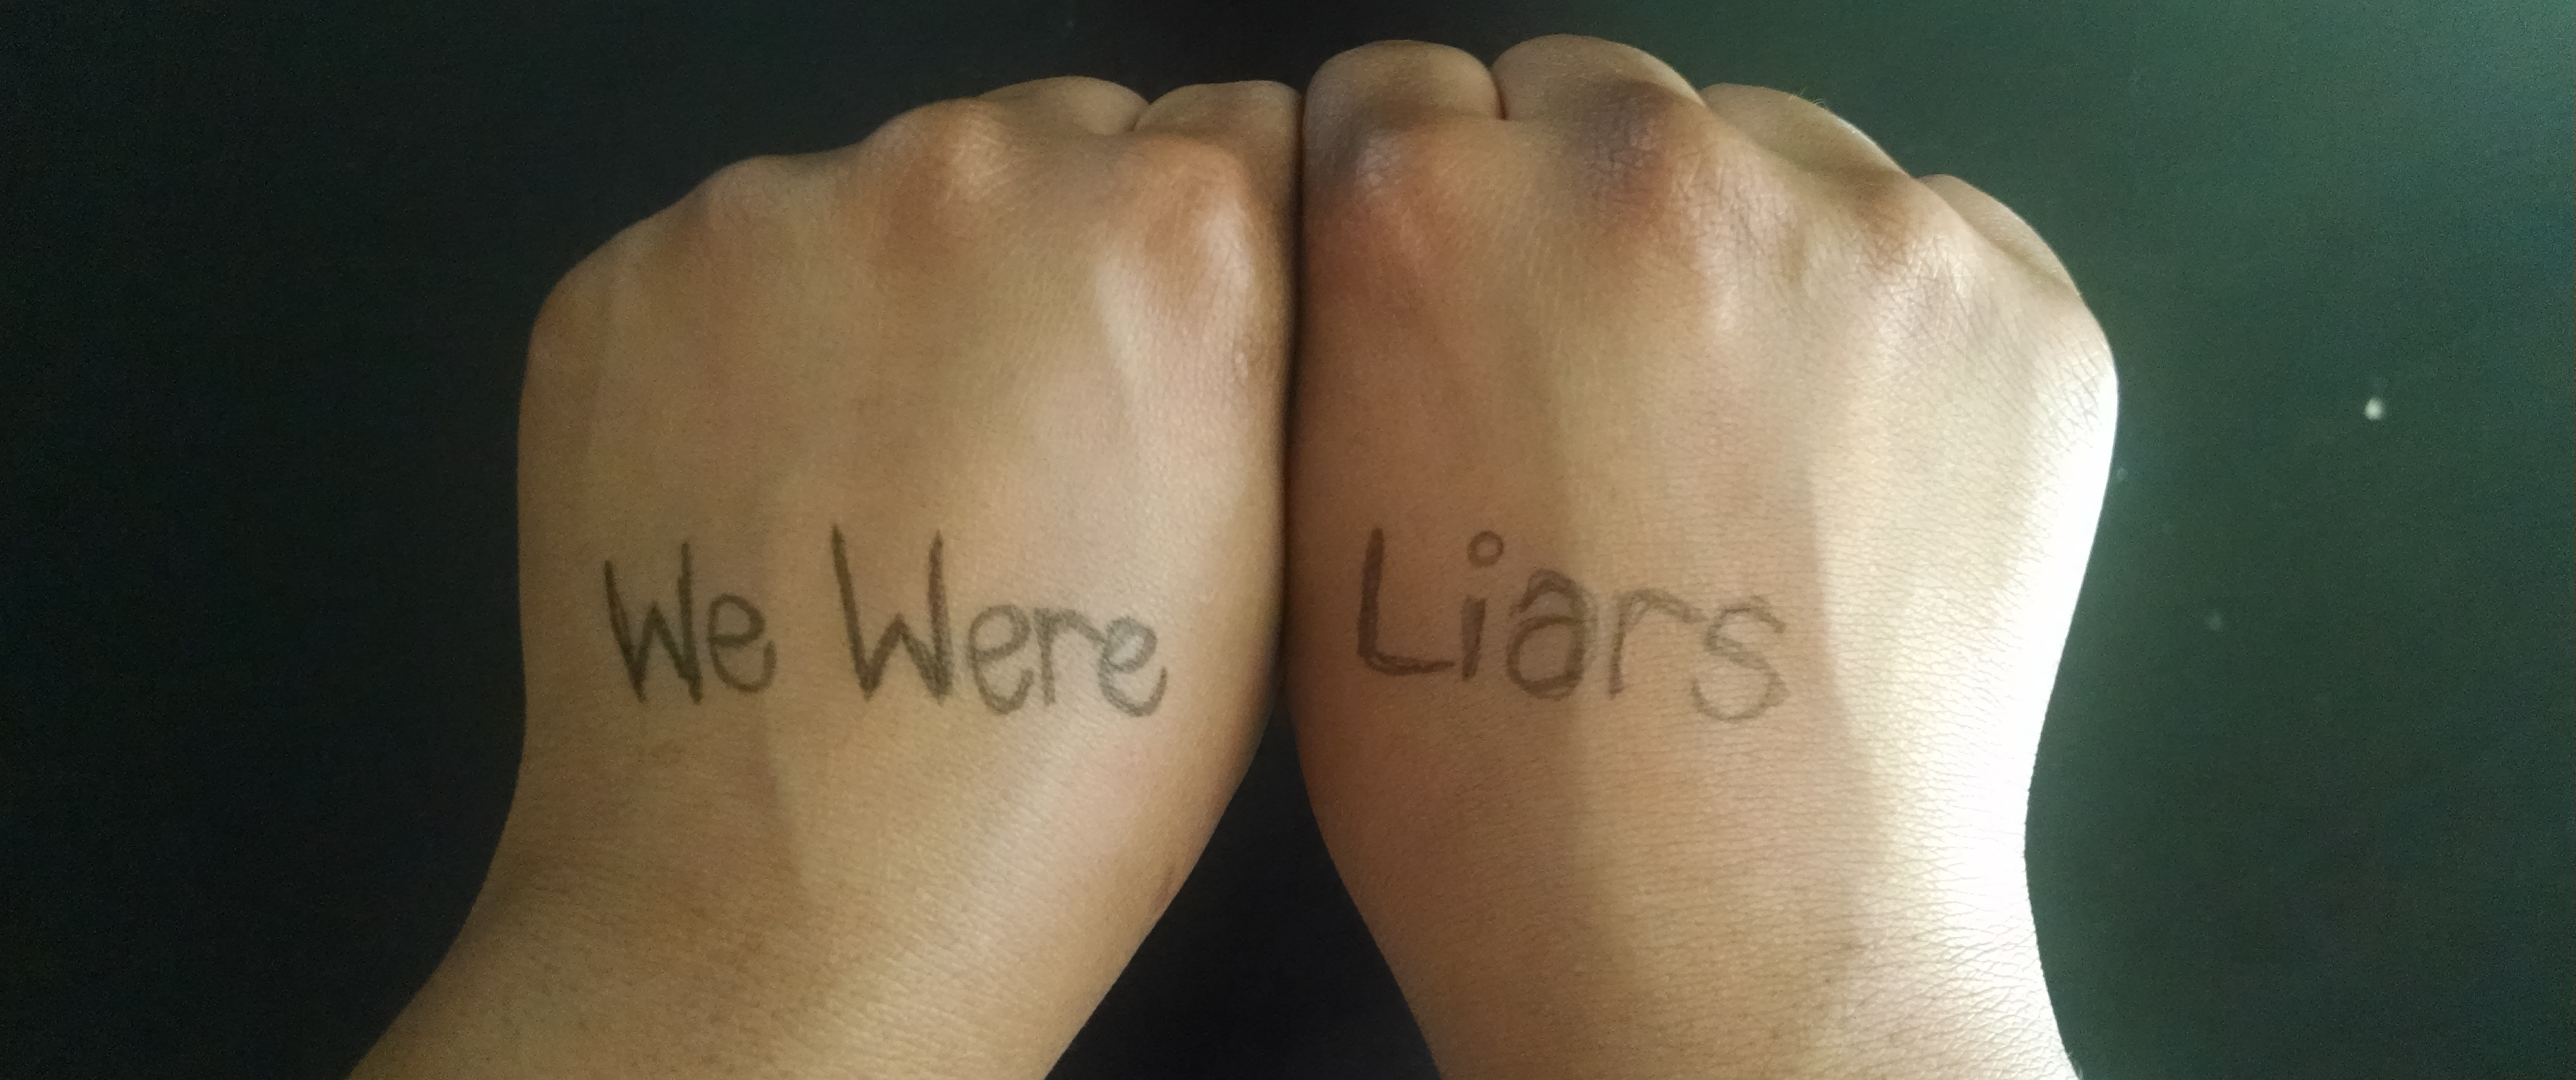 Ardo Omer. Banner. We Were Liars